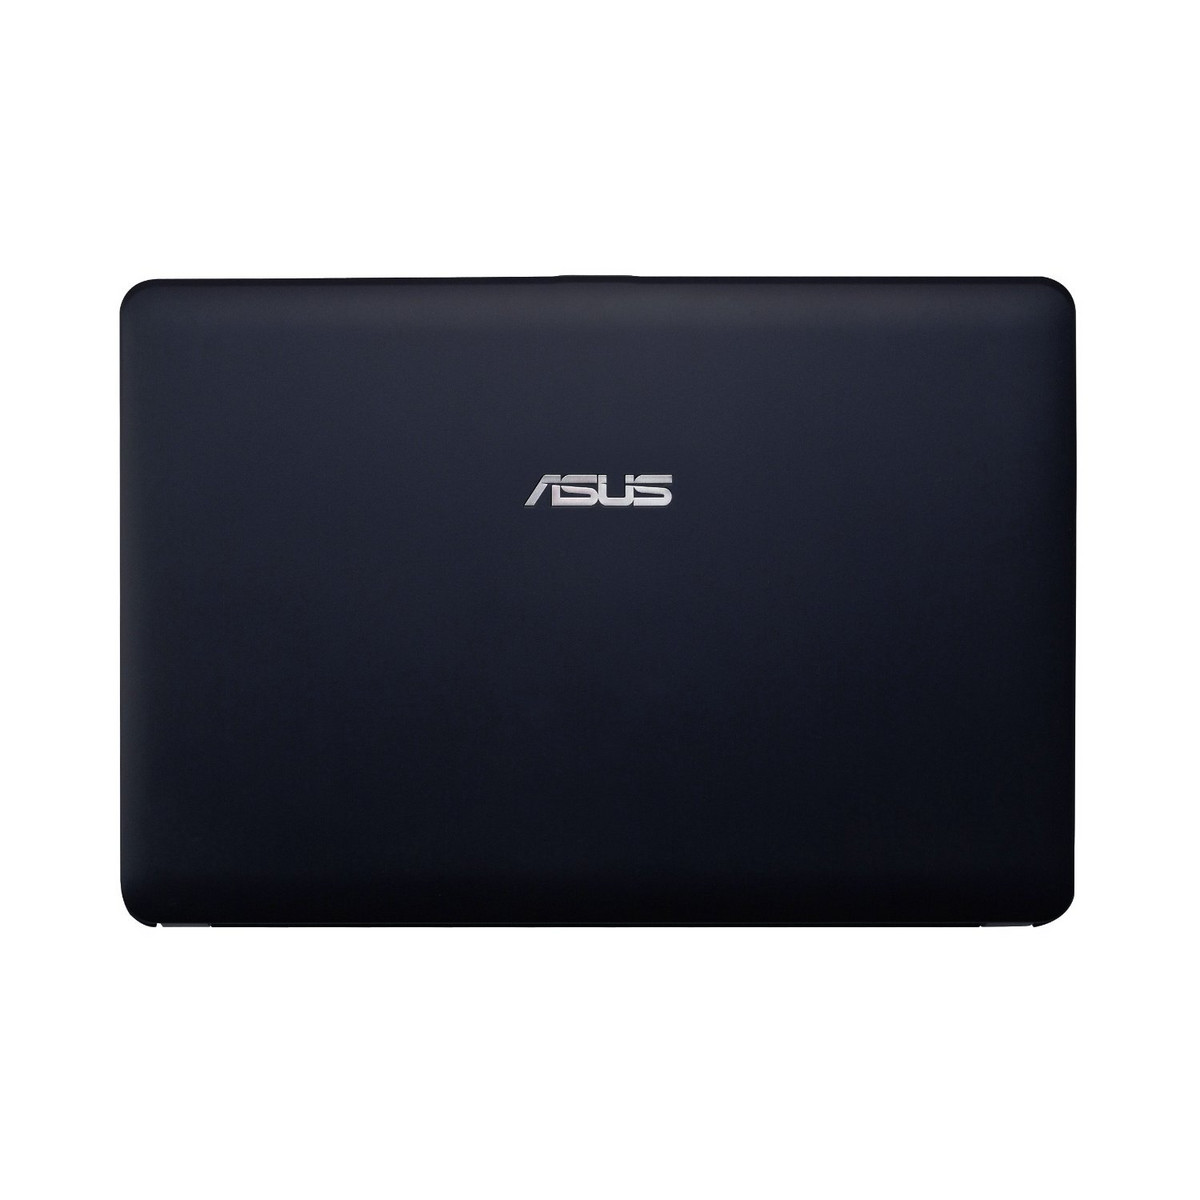 ASUS 1015PED-MU17-WT DRIVER FOR WINDOWS DOWNLOAD